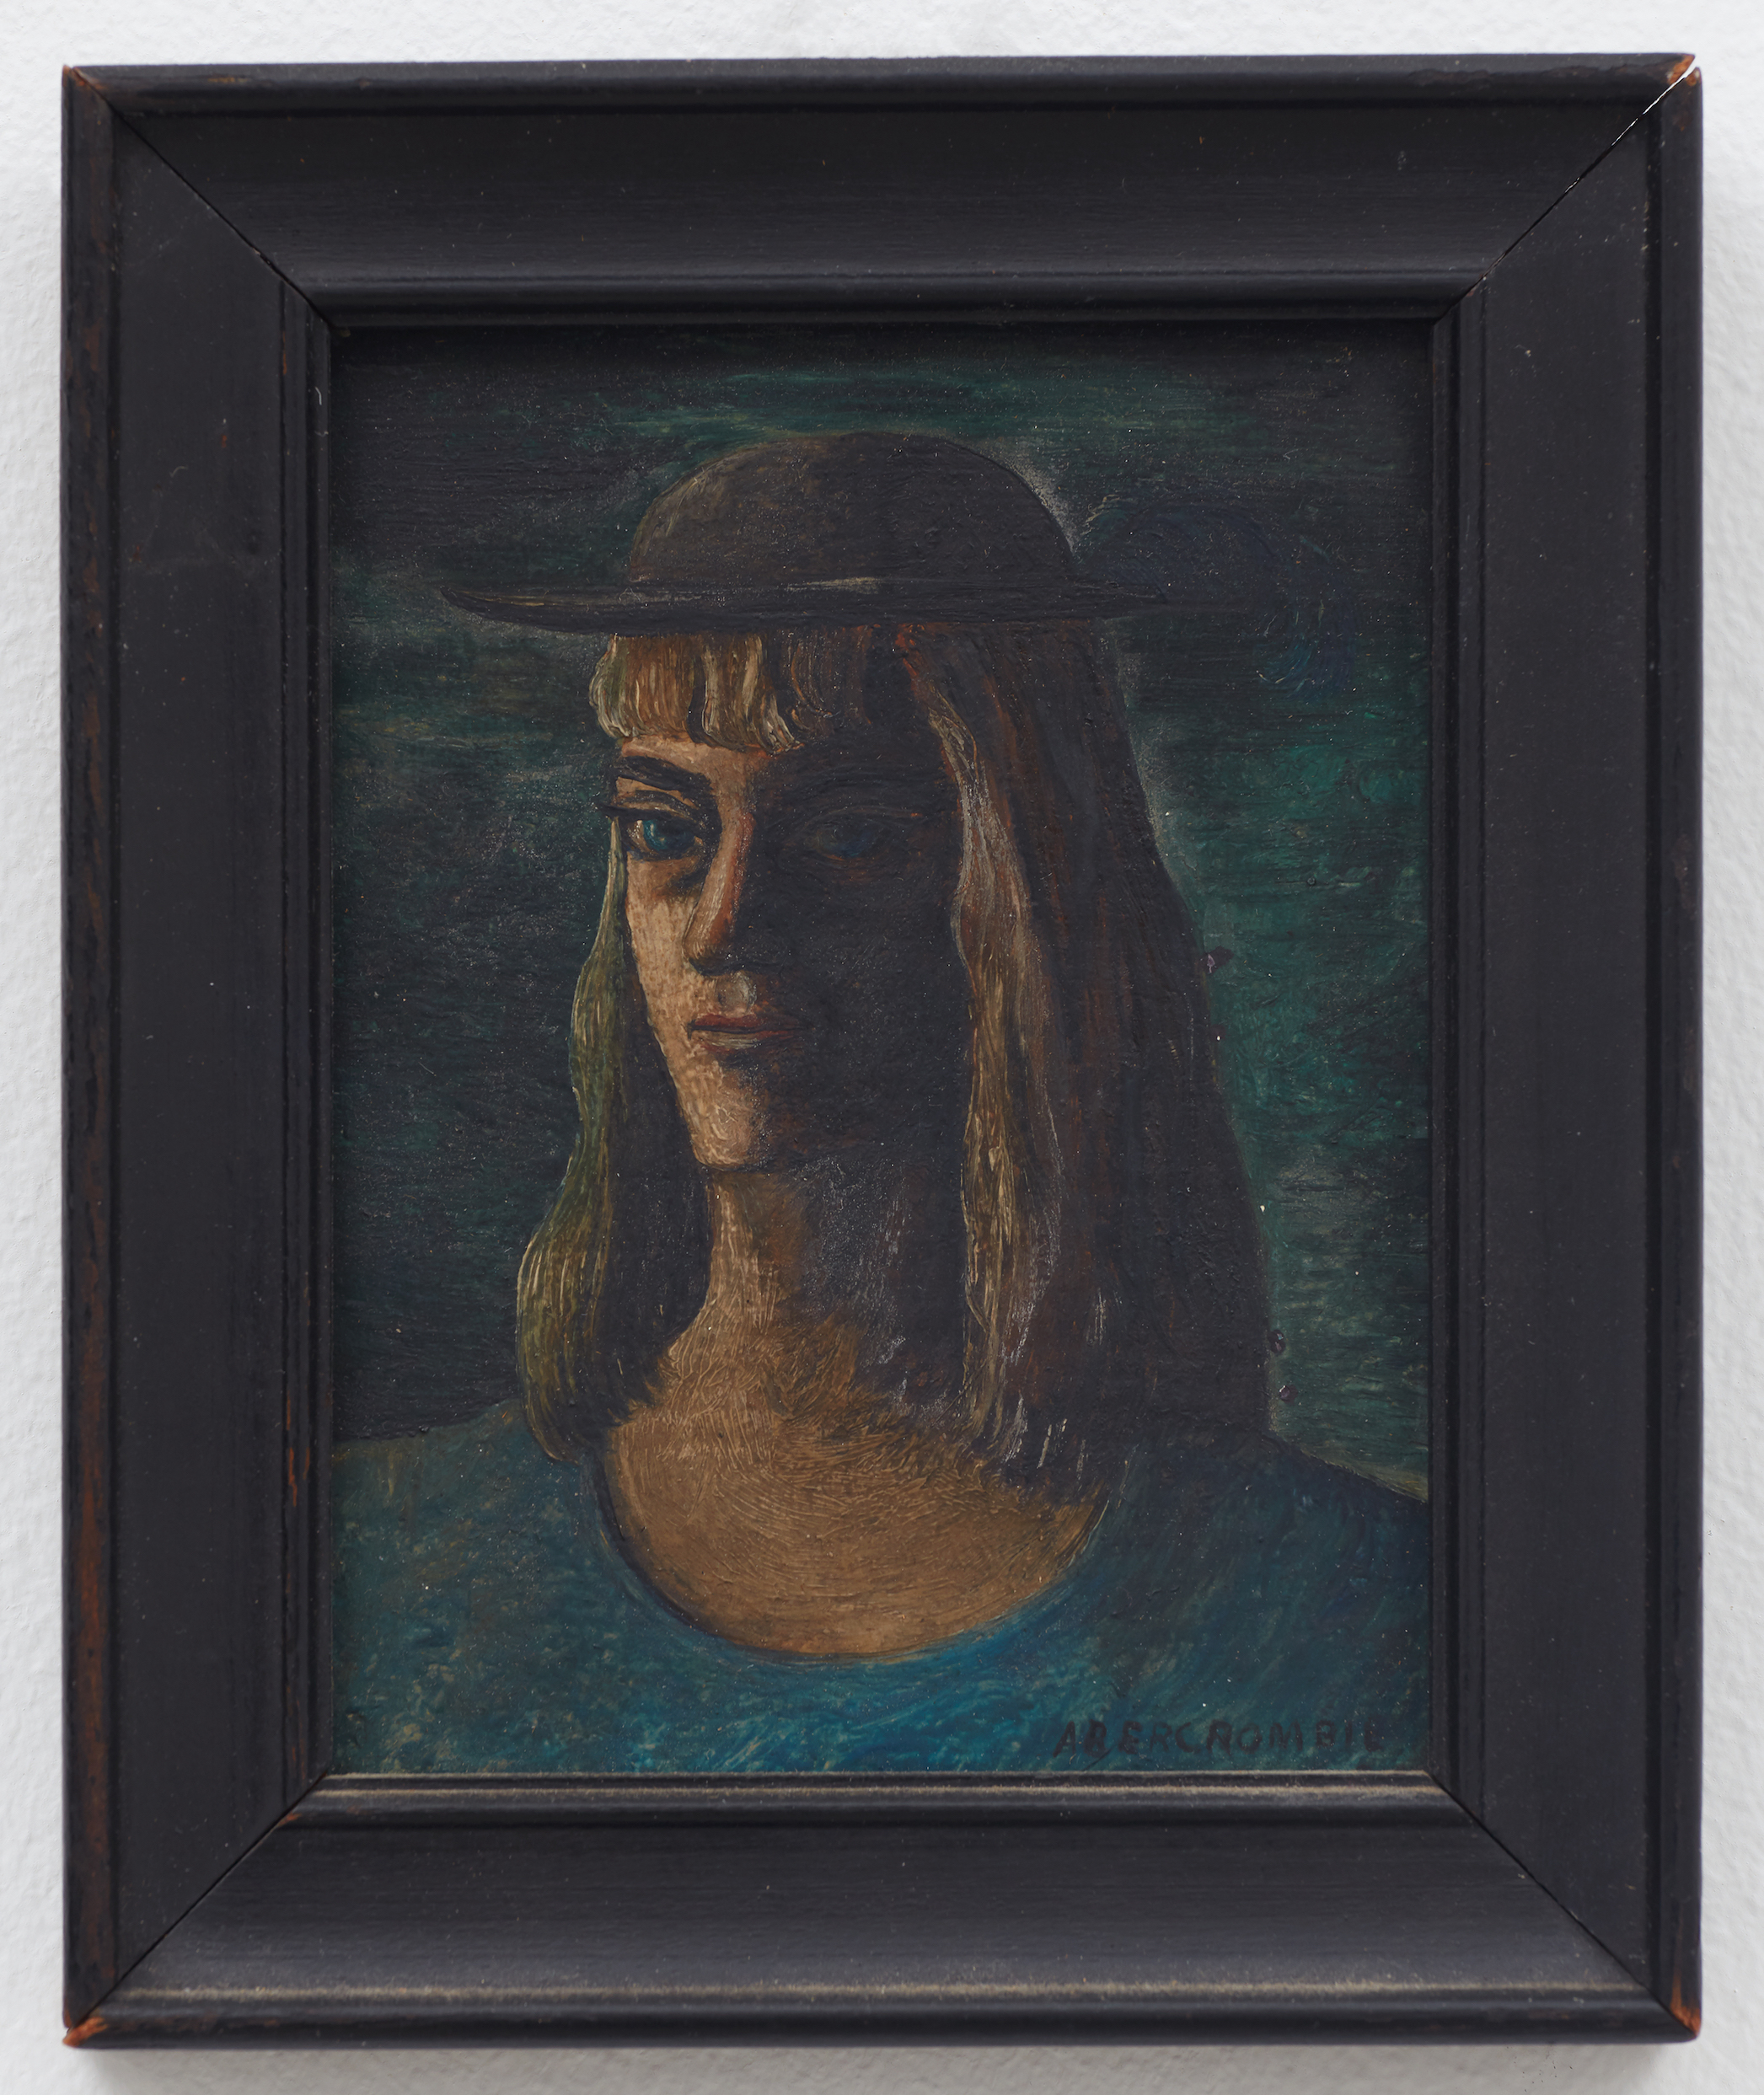 Self Portrait,  n.d., Oil on masonite, 4 1/2 × 3 1/2 inches (unframed); 5 1/2 × 4 3/4 inches (framed). Illinois State Museum, Illinois Legacy Collection, Gift of the Estate of Maurine Campbell.